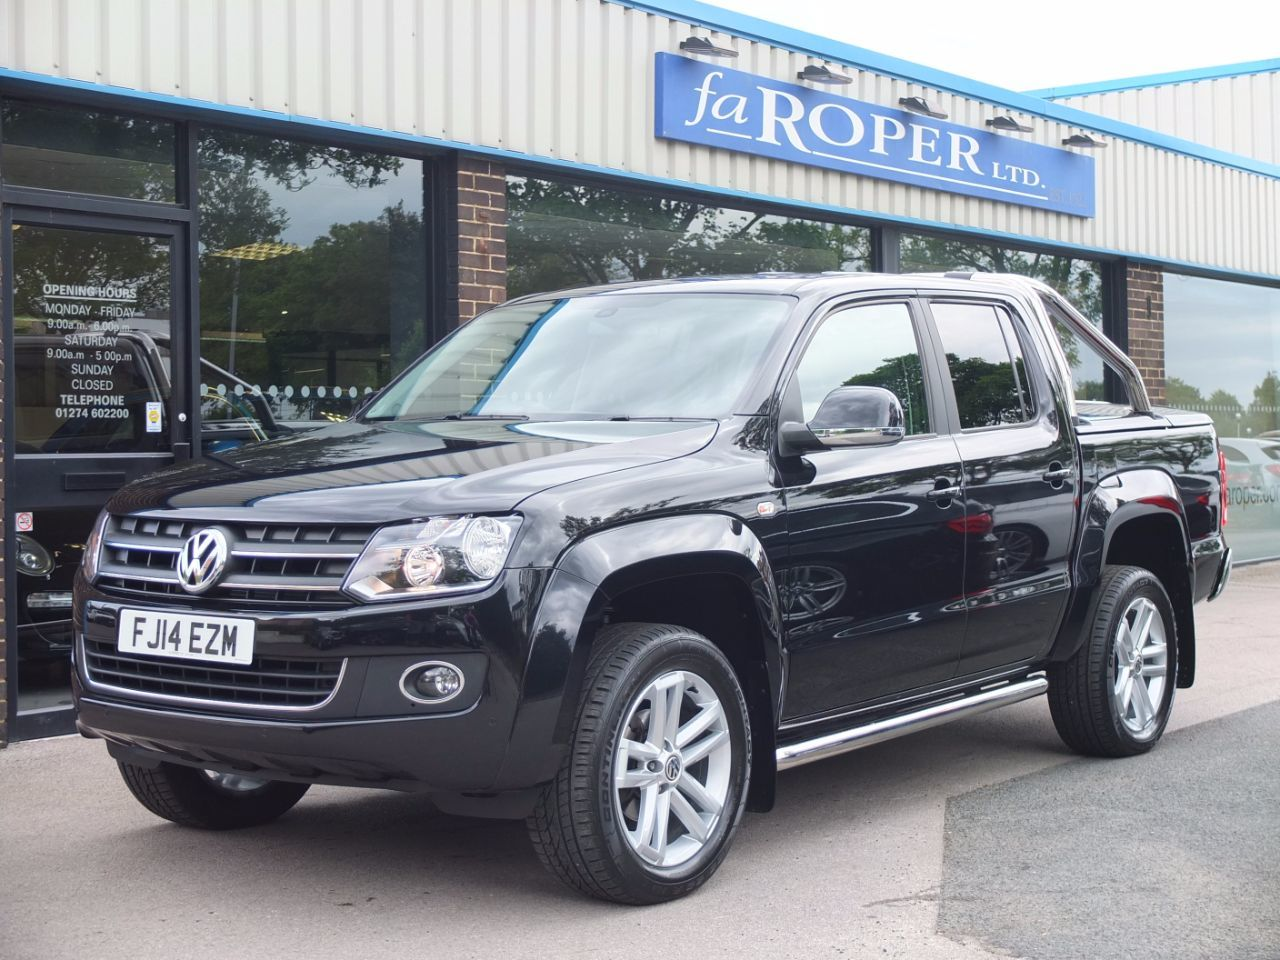 Volkswagen Amarok Highline 2.0 BiTDI 180ps 4MOTION 8 Speed DSG Pick Up Diesel Deep Black PearlVolkswagen Amarok Highline 2.0 BiTDI 180ps 4MOTION 8 Speed DSG Pick Up Diesel Deep Black Pearl at fa Roper Ltd Bradford